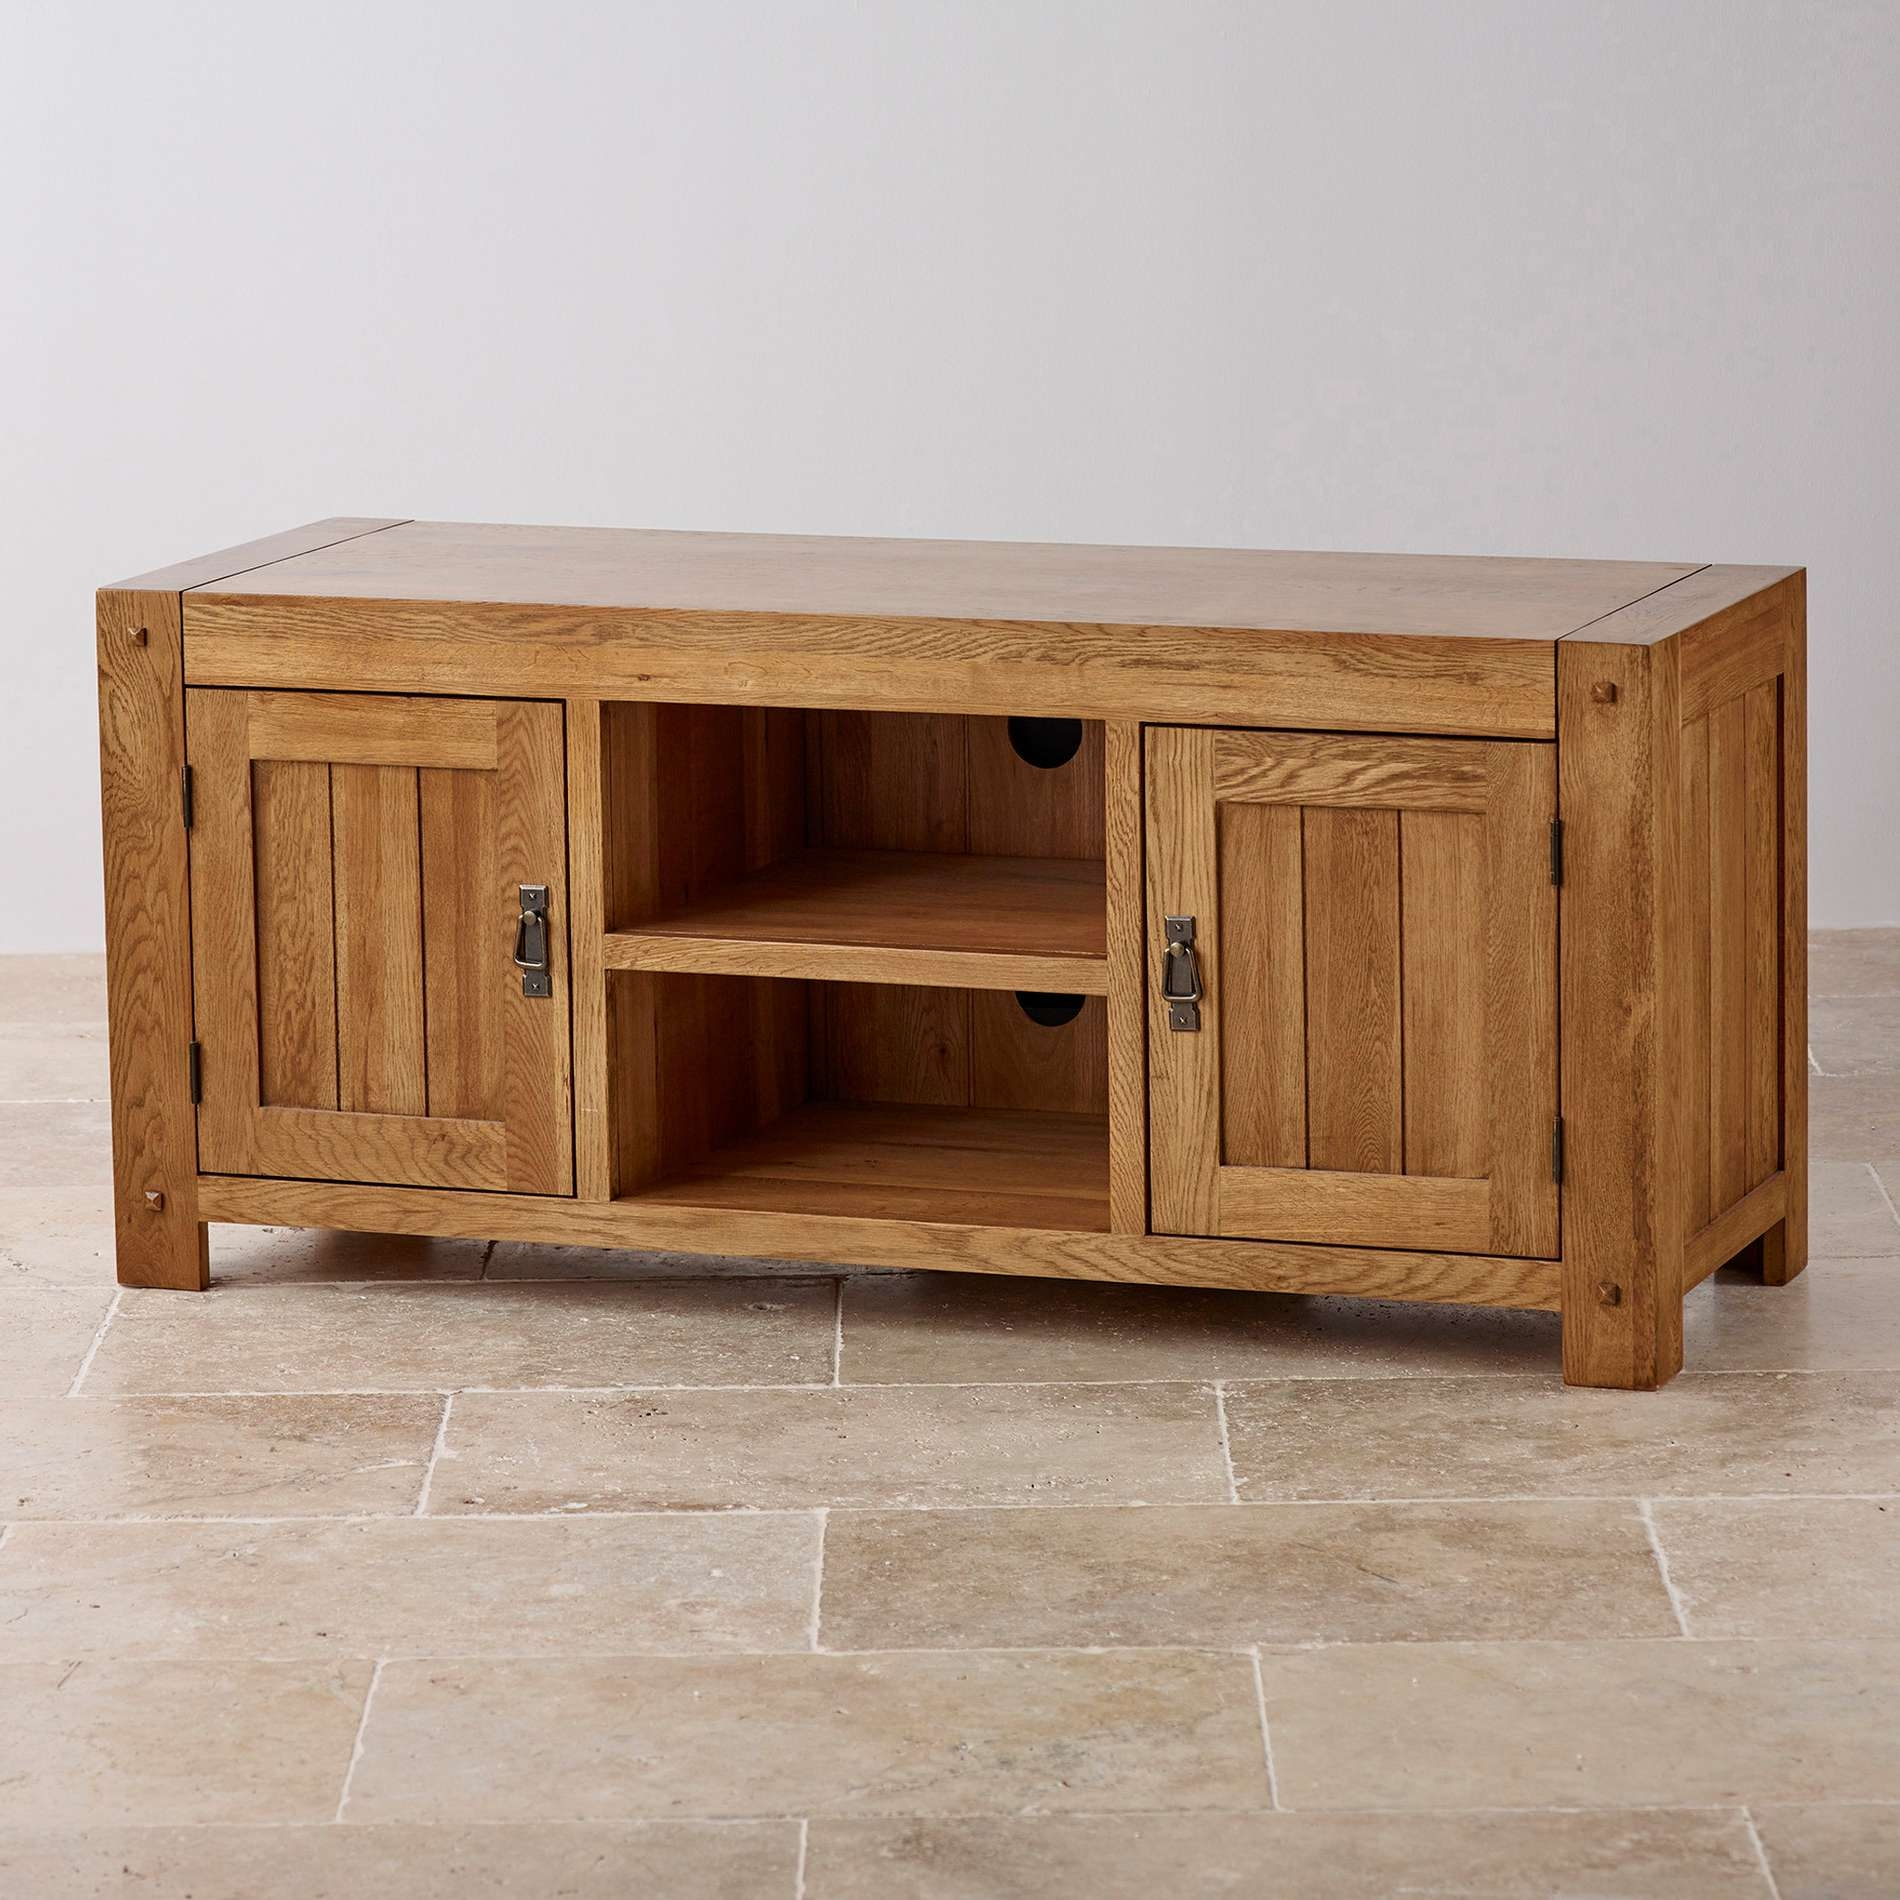 Tv Cabinets | Mango, Painted & Oak Tv Units | Oak Furniture Land With Regard To Large Oak Tv Cabinets (View 18 of 20)